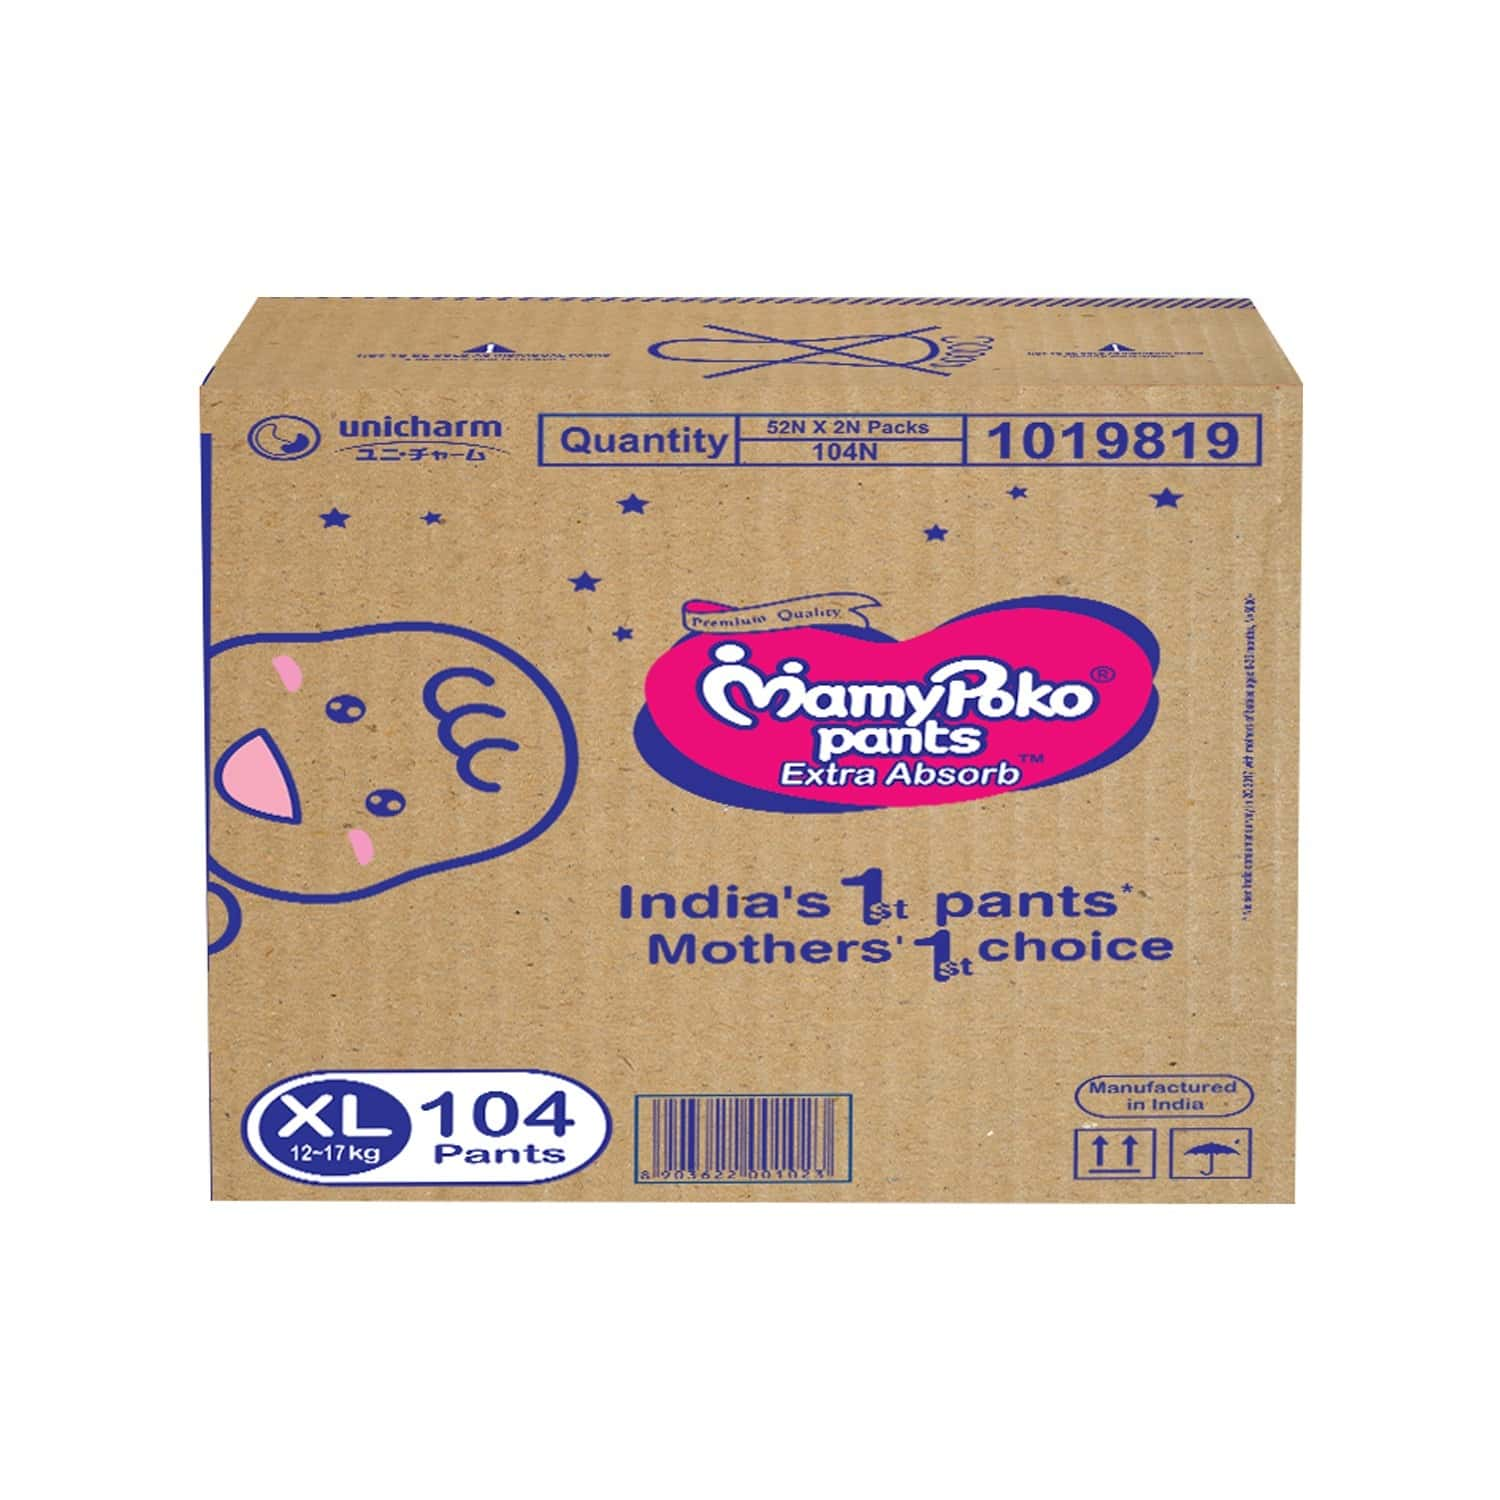 Mamypoko Pants Extra Absorb Diaper - Extra Large Size, Pack Of 104 Diapers